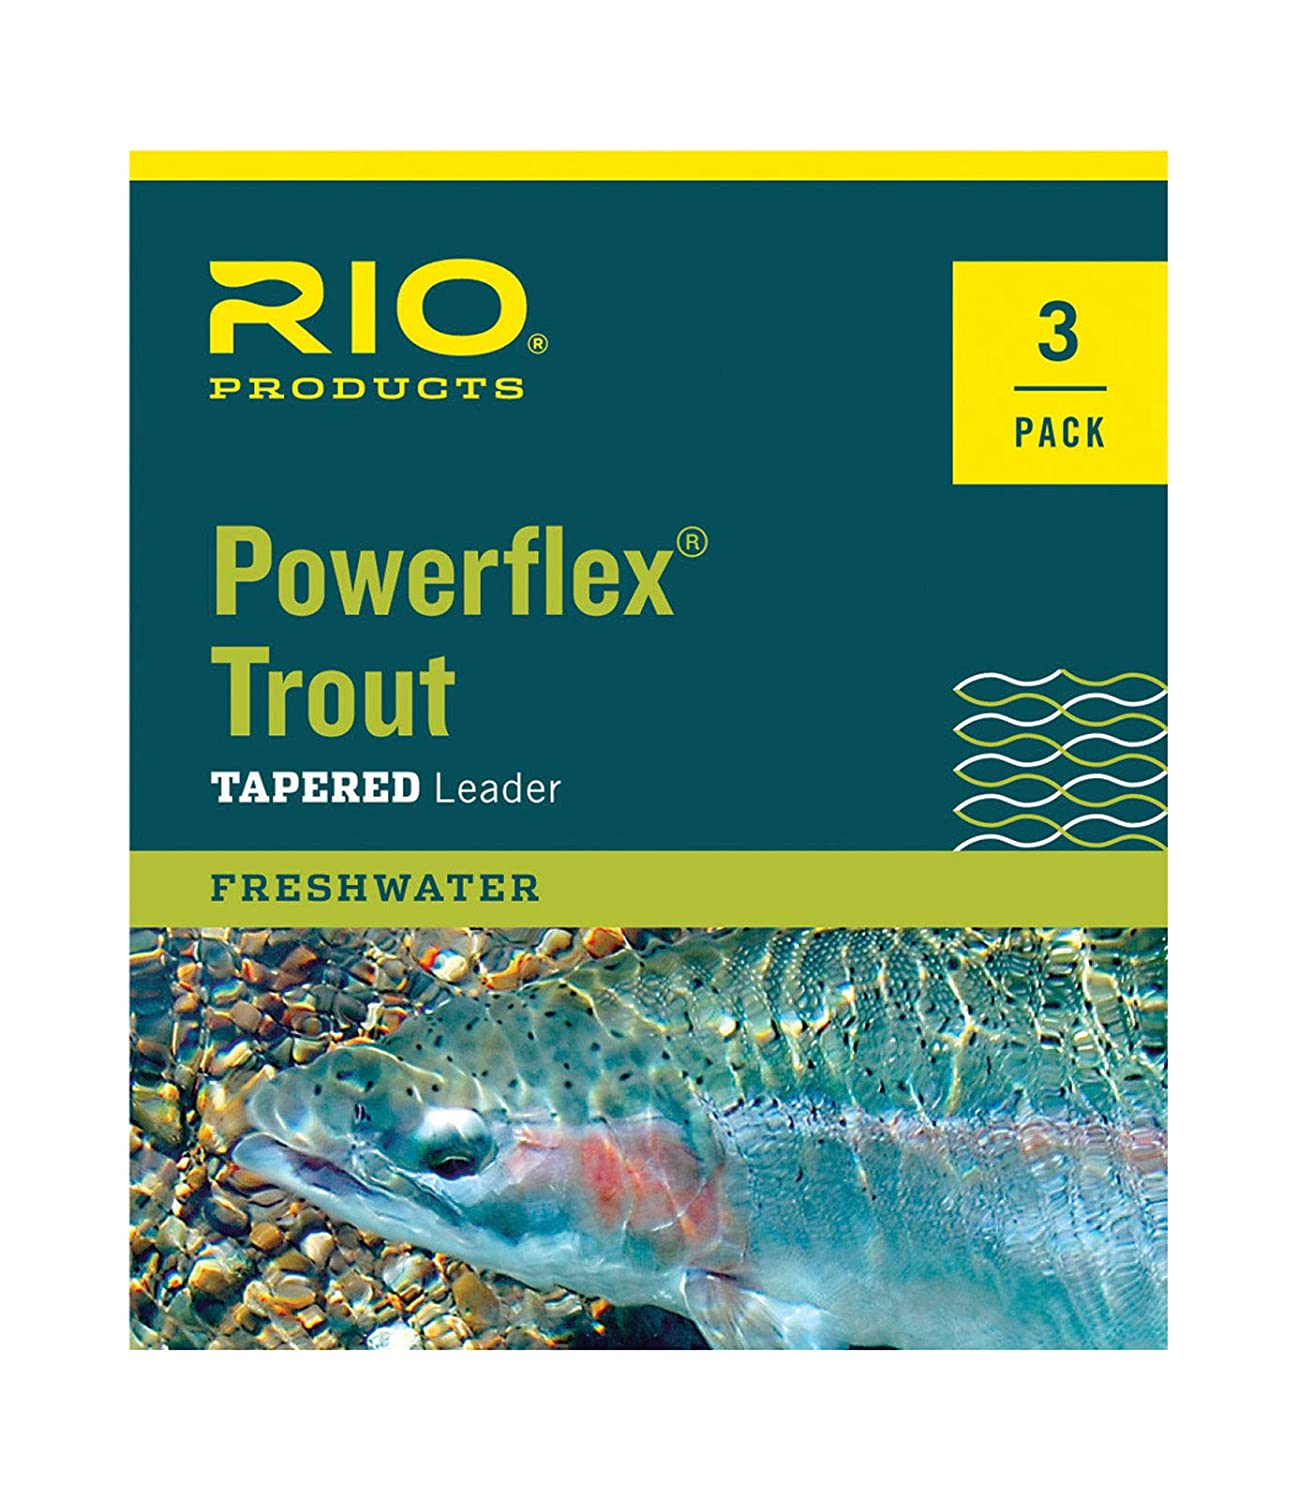 RIO 2-PACK POWERFLEX PLUS TROUT 7.5 FT 2X 12 LB NYLON FLY FISHING LEADERS Sporting Goods Fly Fishing Line, Leaders & Tippets